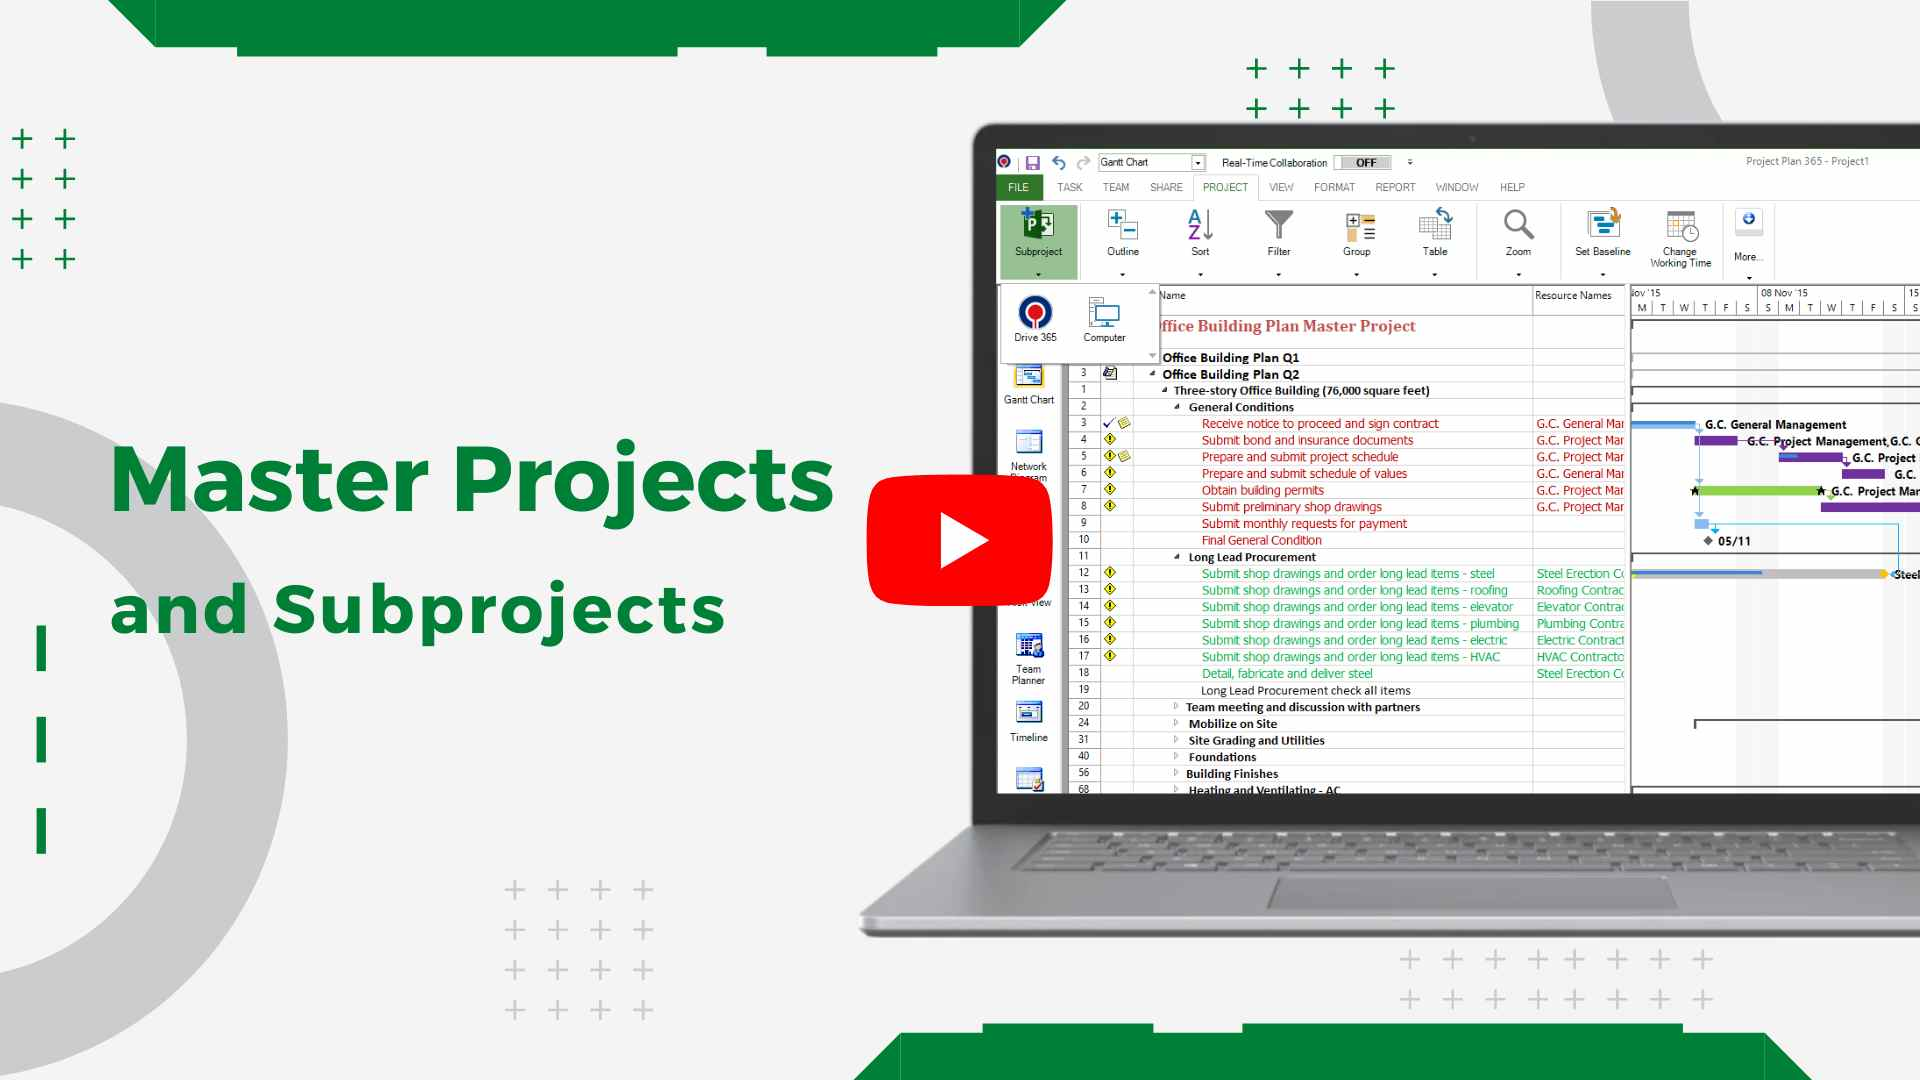 MPP Projects